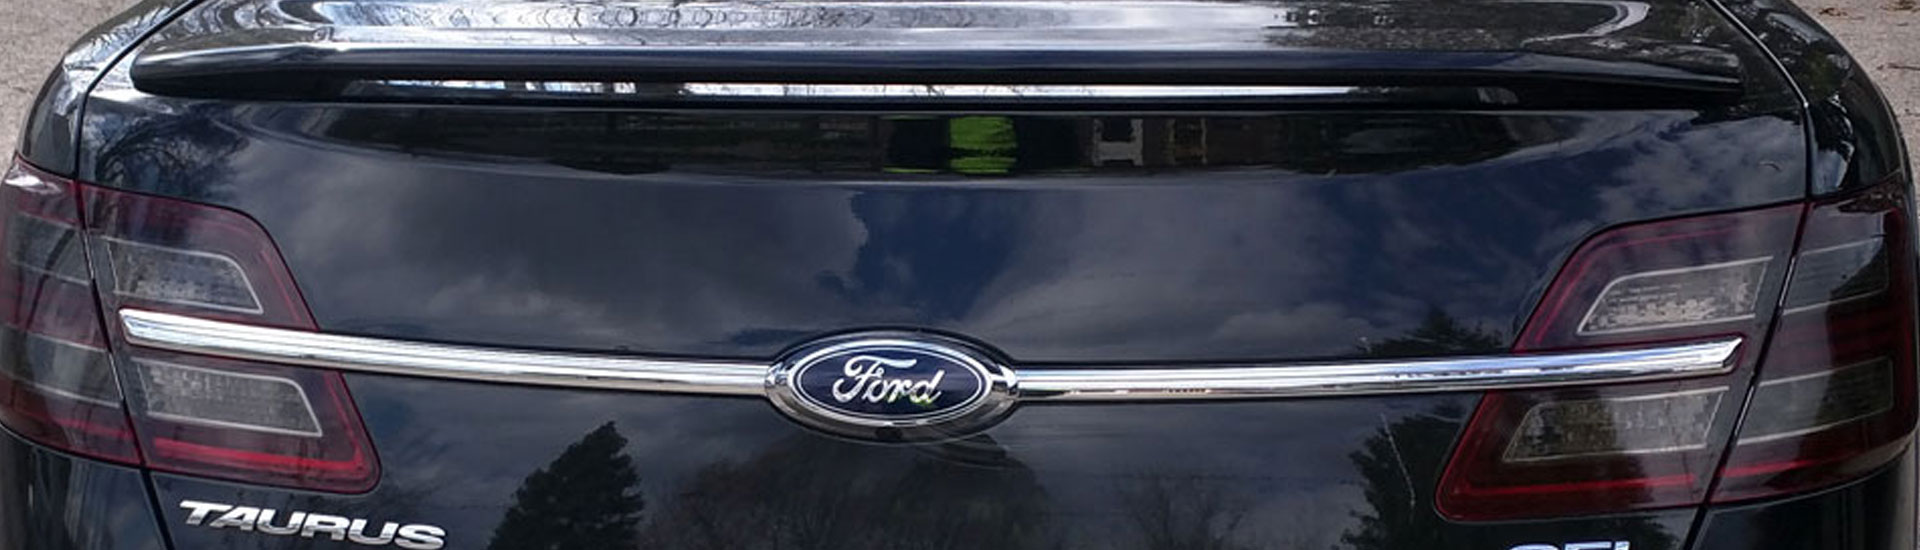 Ford Taurus Tail Light Tint Film Covers